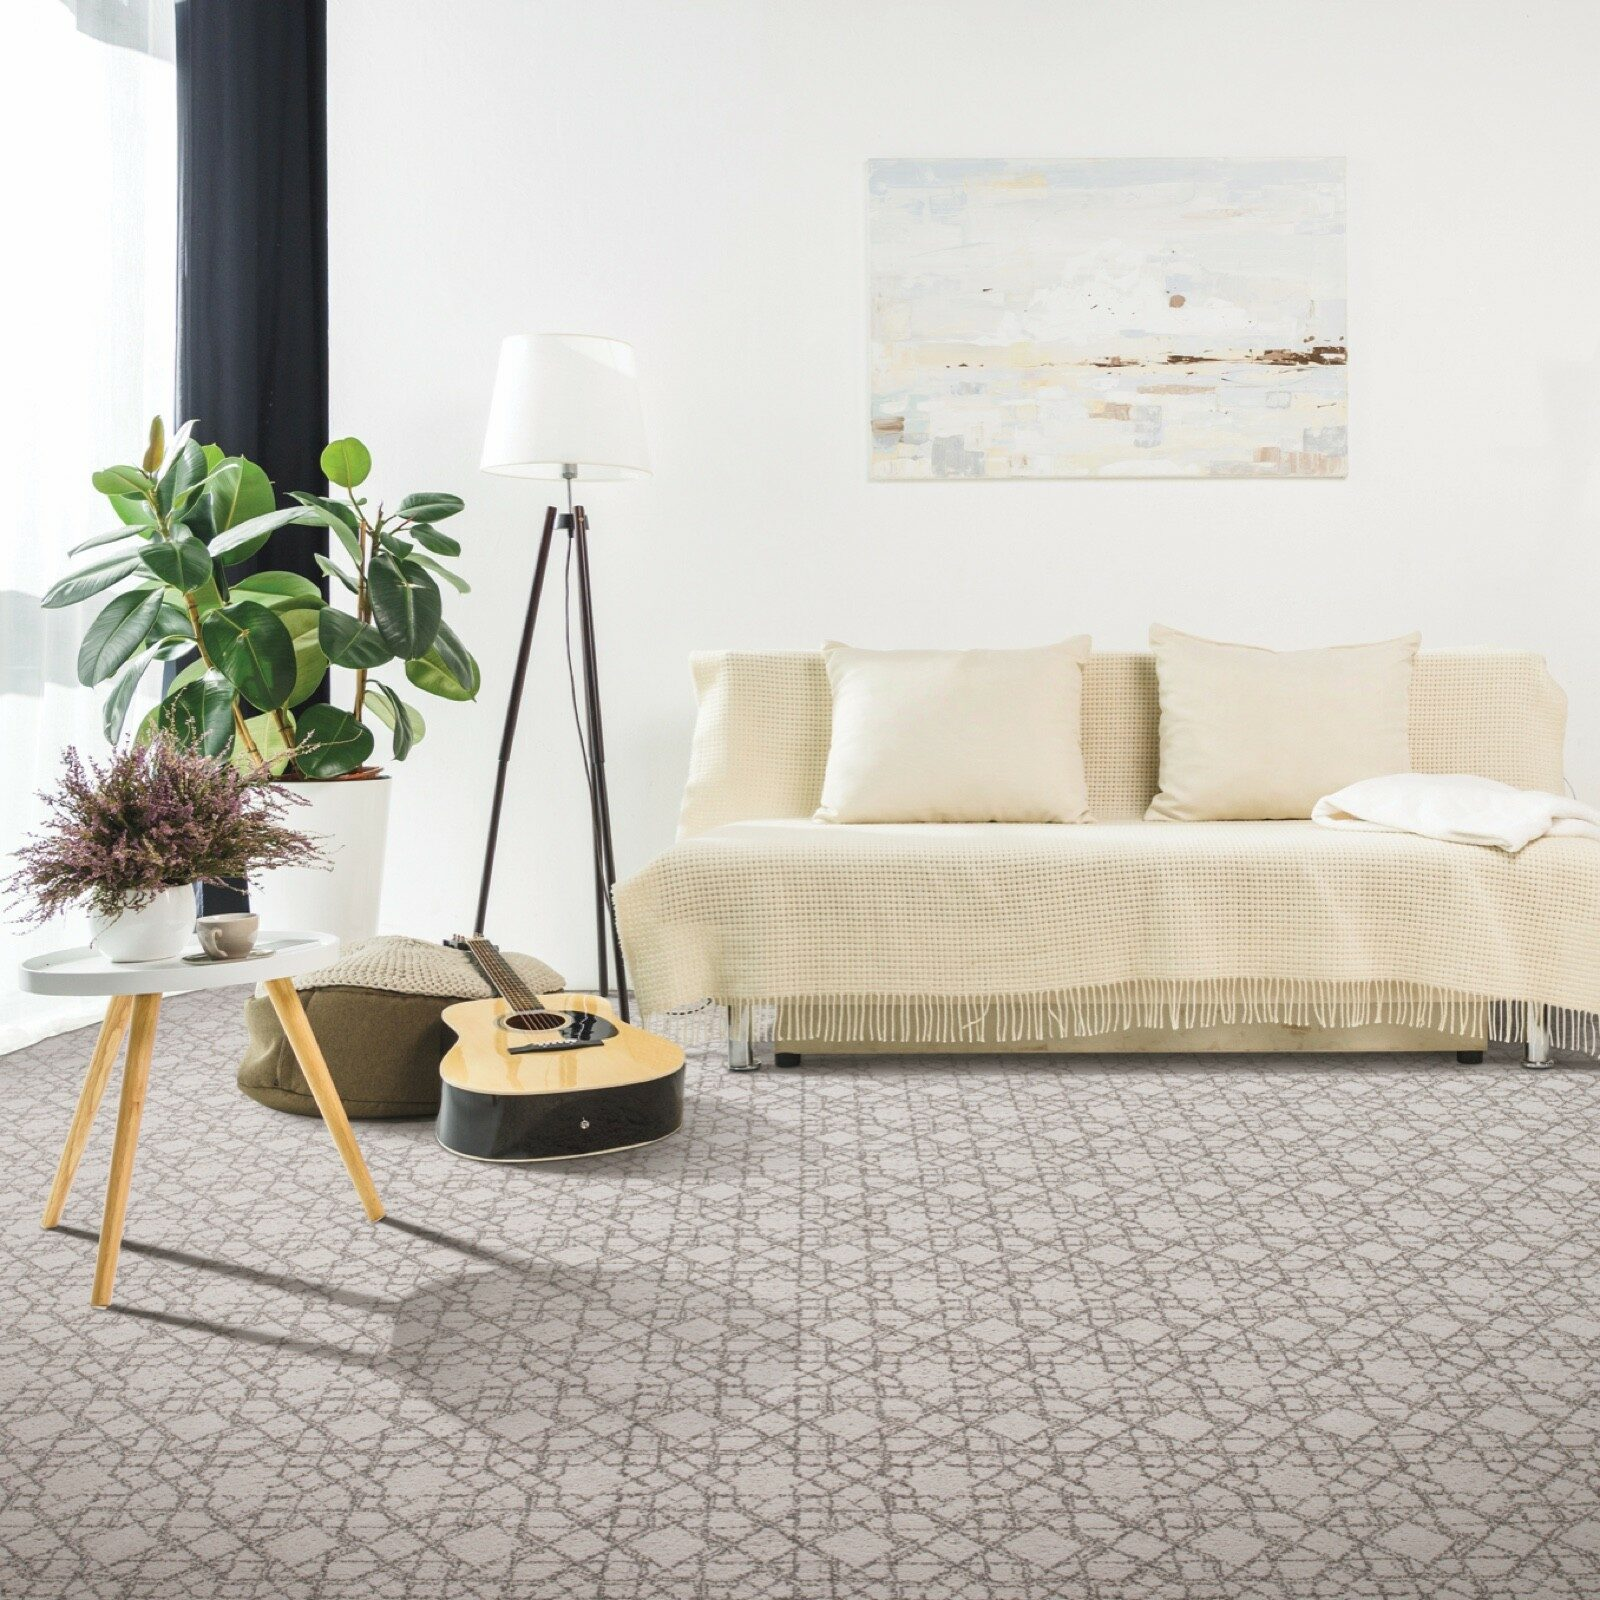 Carpet design | Great Lakes Carpet & Tile